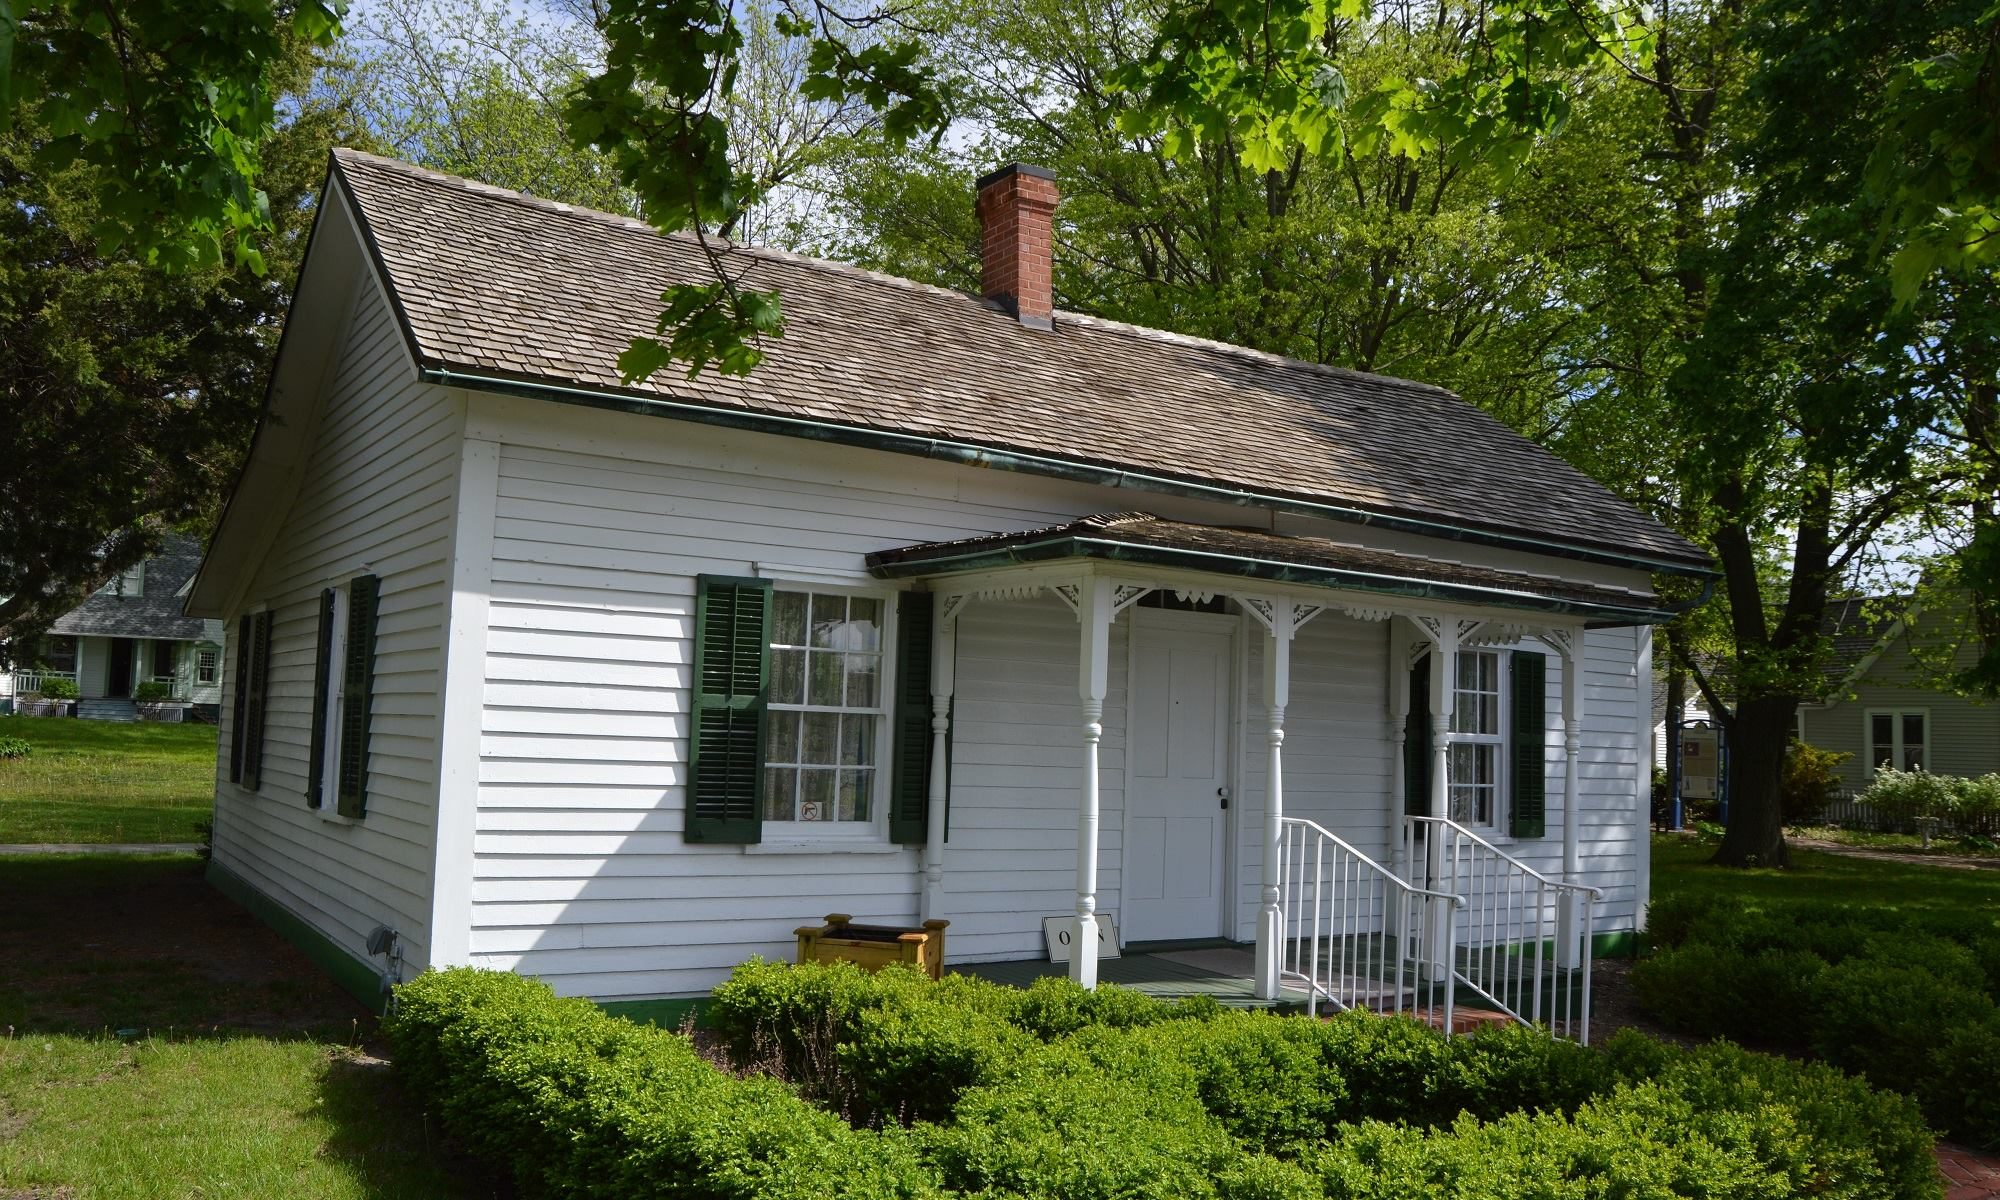 Bement Cottage, where Lincoln and Douglas met